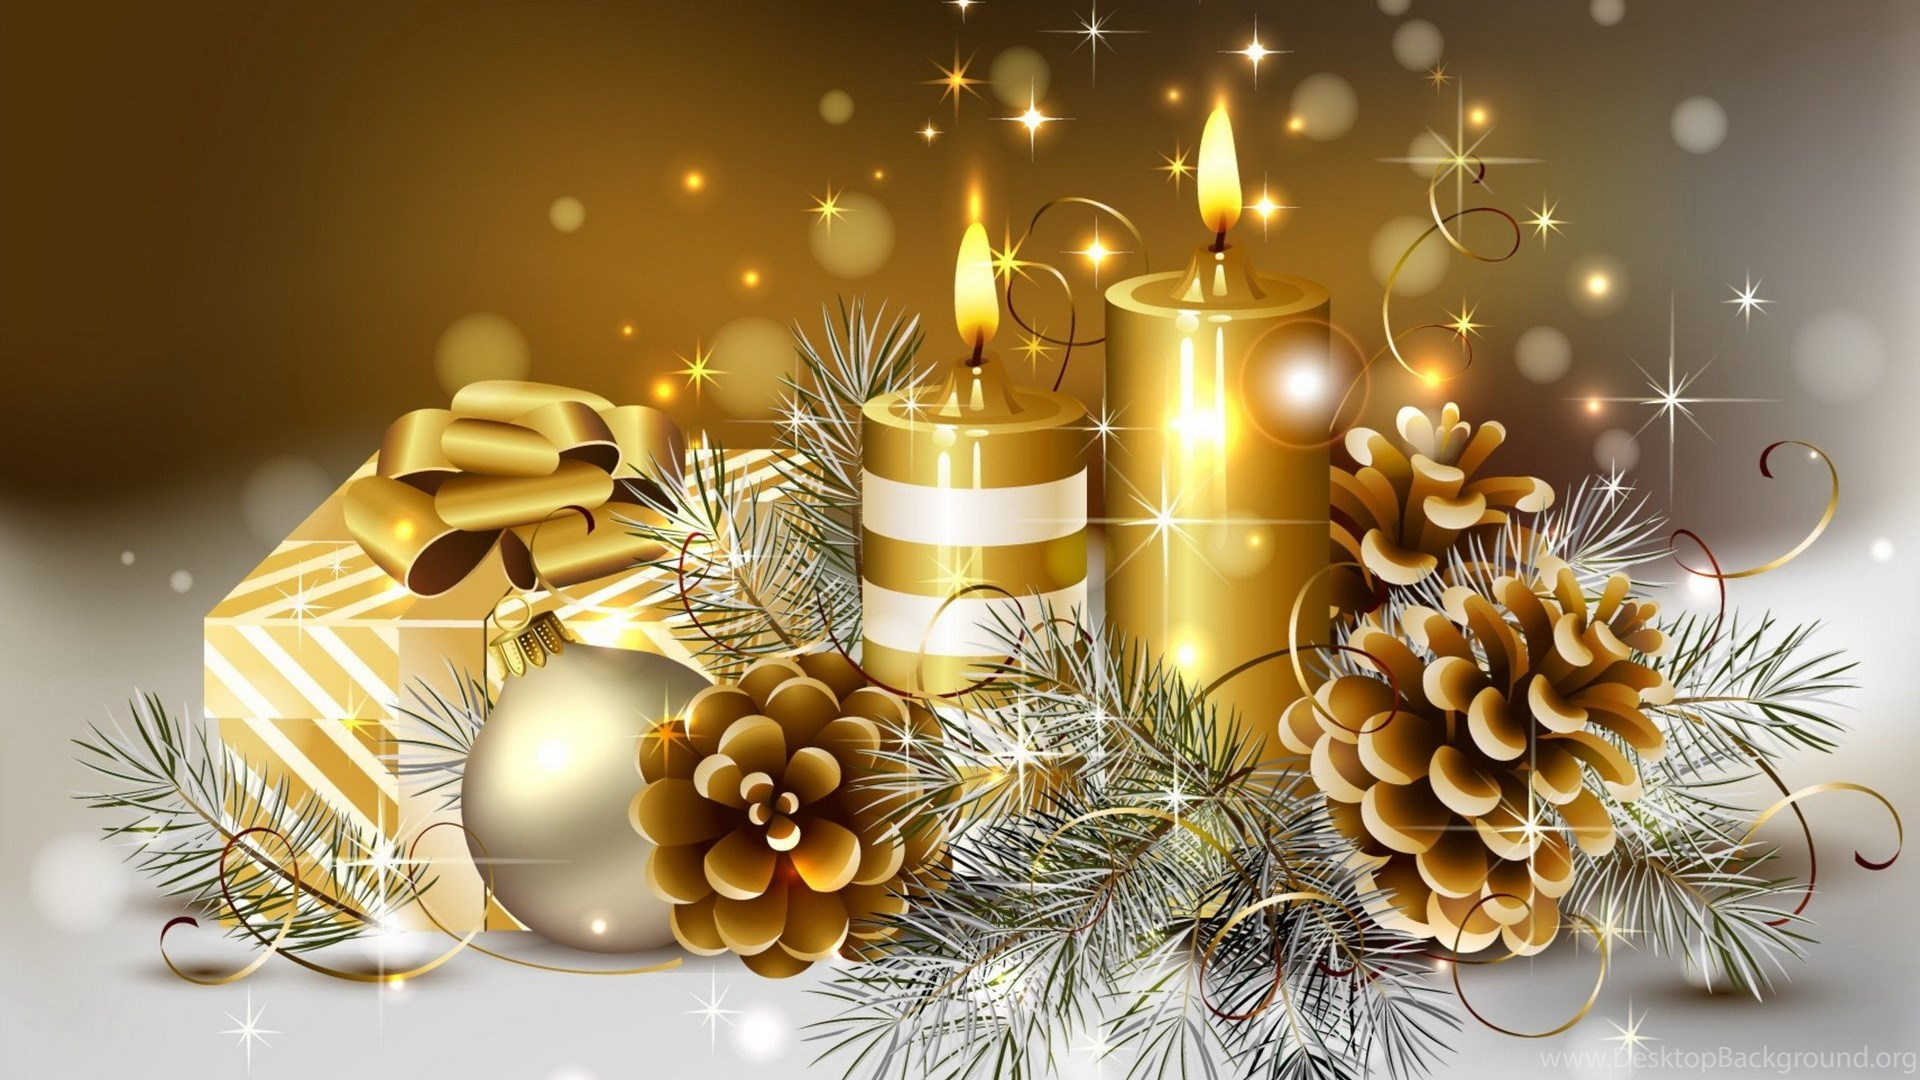 Free Christmas Candles Wallpapers Hd Wallpapers Desktop Background